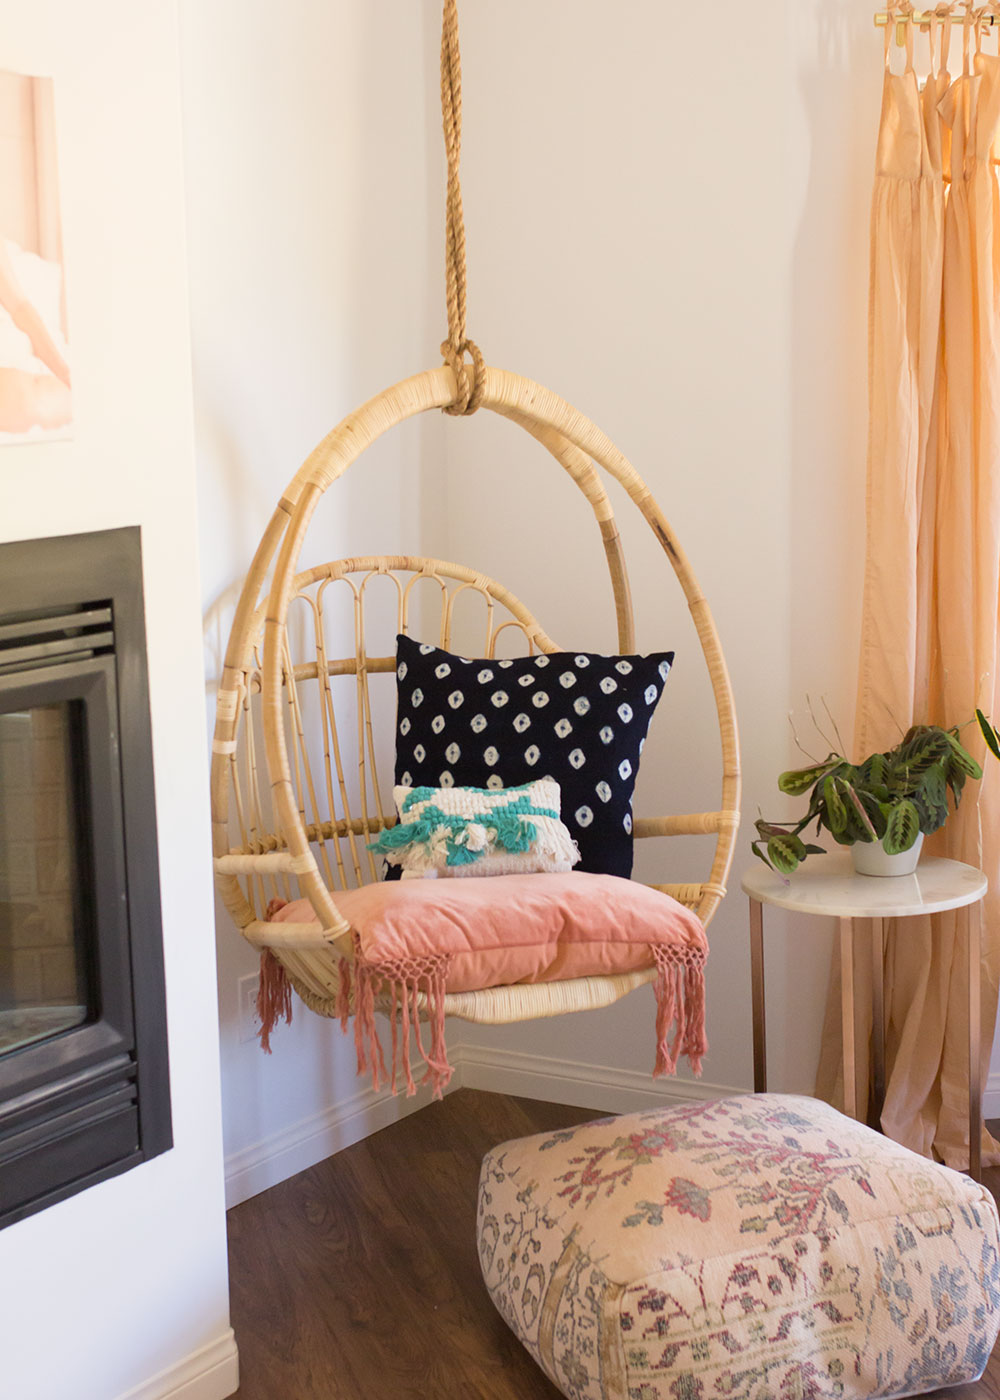 love this hanging chair in this pretty bedroom! | thelovedesignedlife.com #bohovibes #masterbedroom